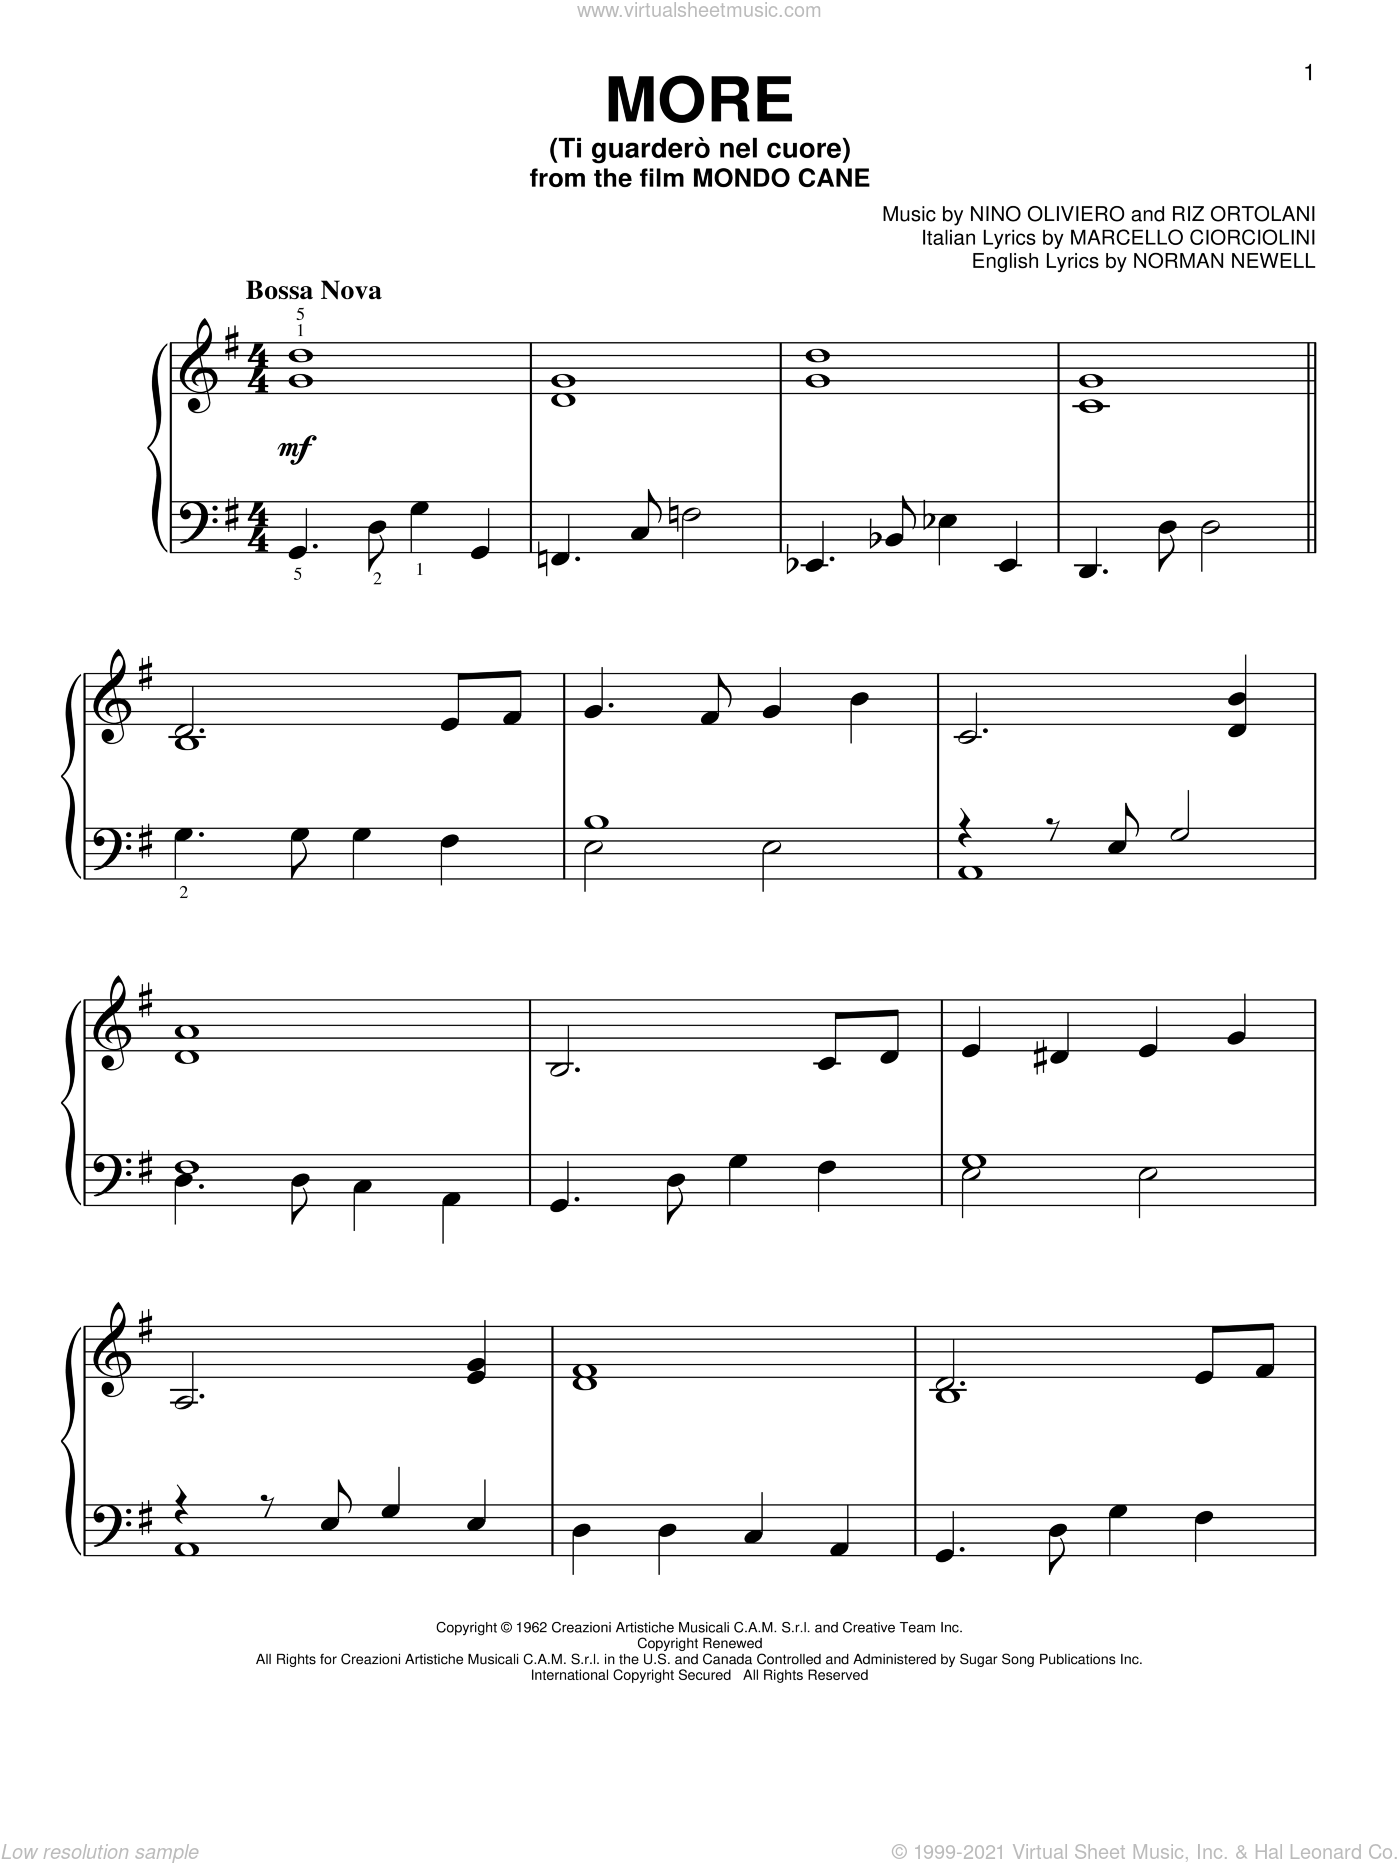 More (Ti Guardero Nel Cuore) sheet music for piano solo by Norman Newell, Kai Winding, Marcello Ciorciolini, Nino Oliviero and Riz Ortolani, easy skill level